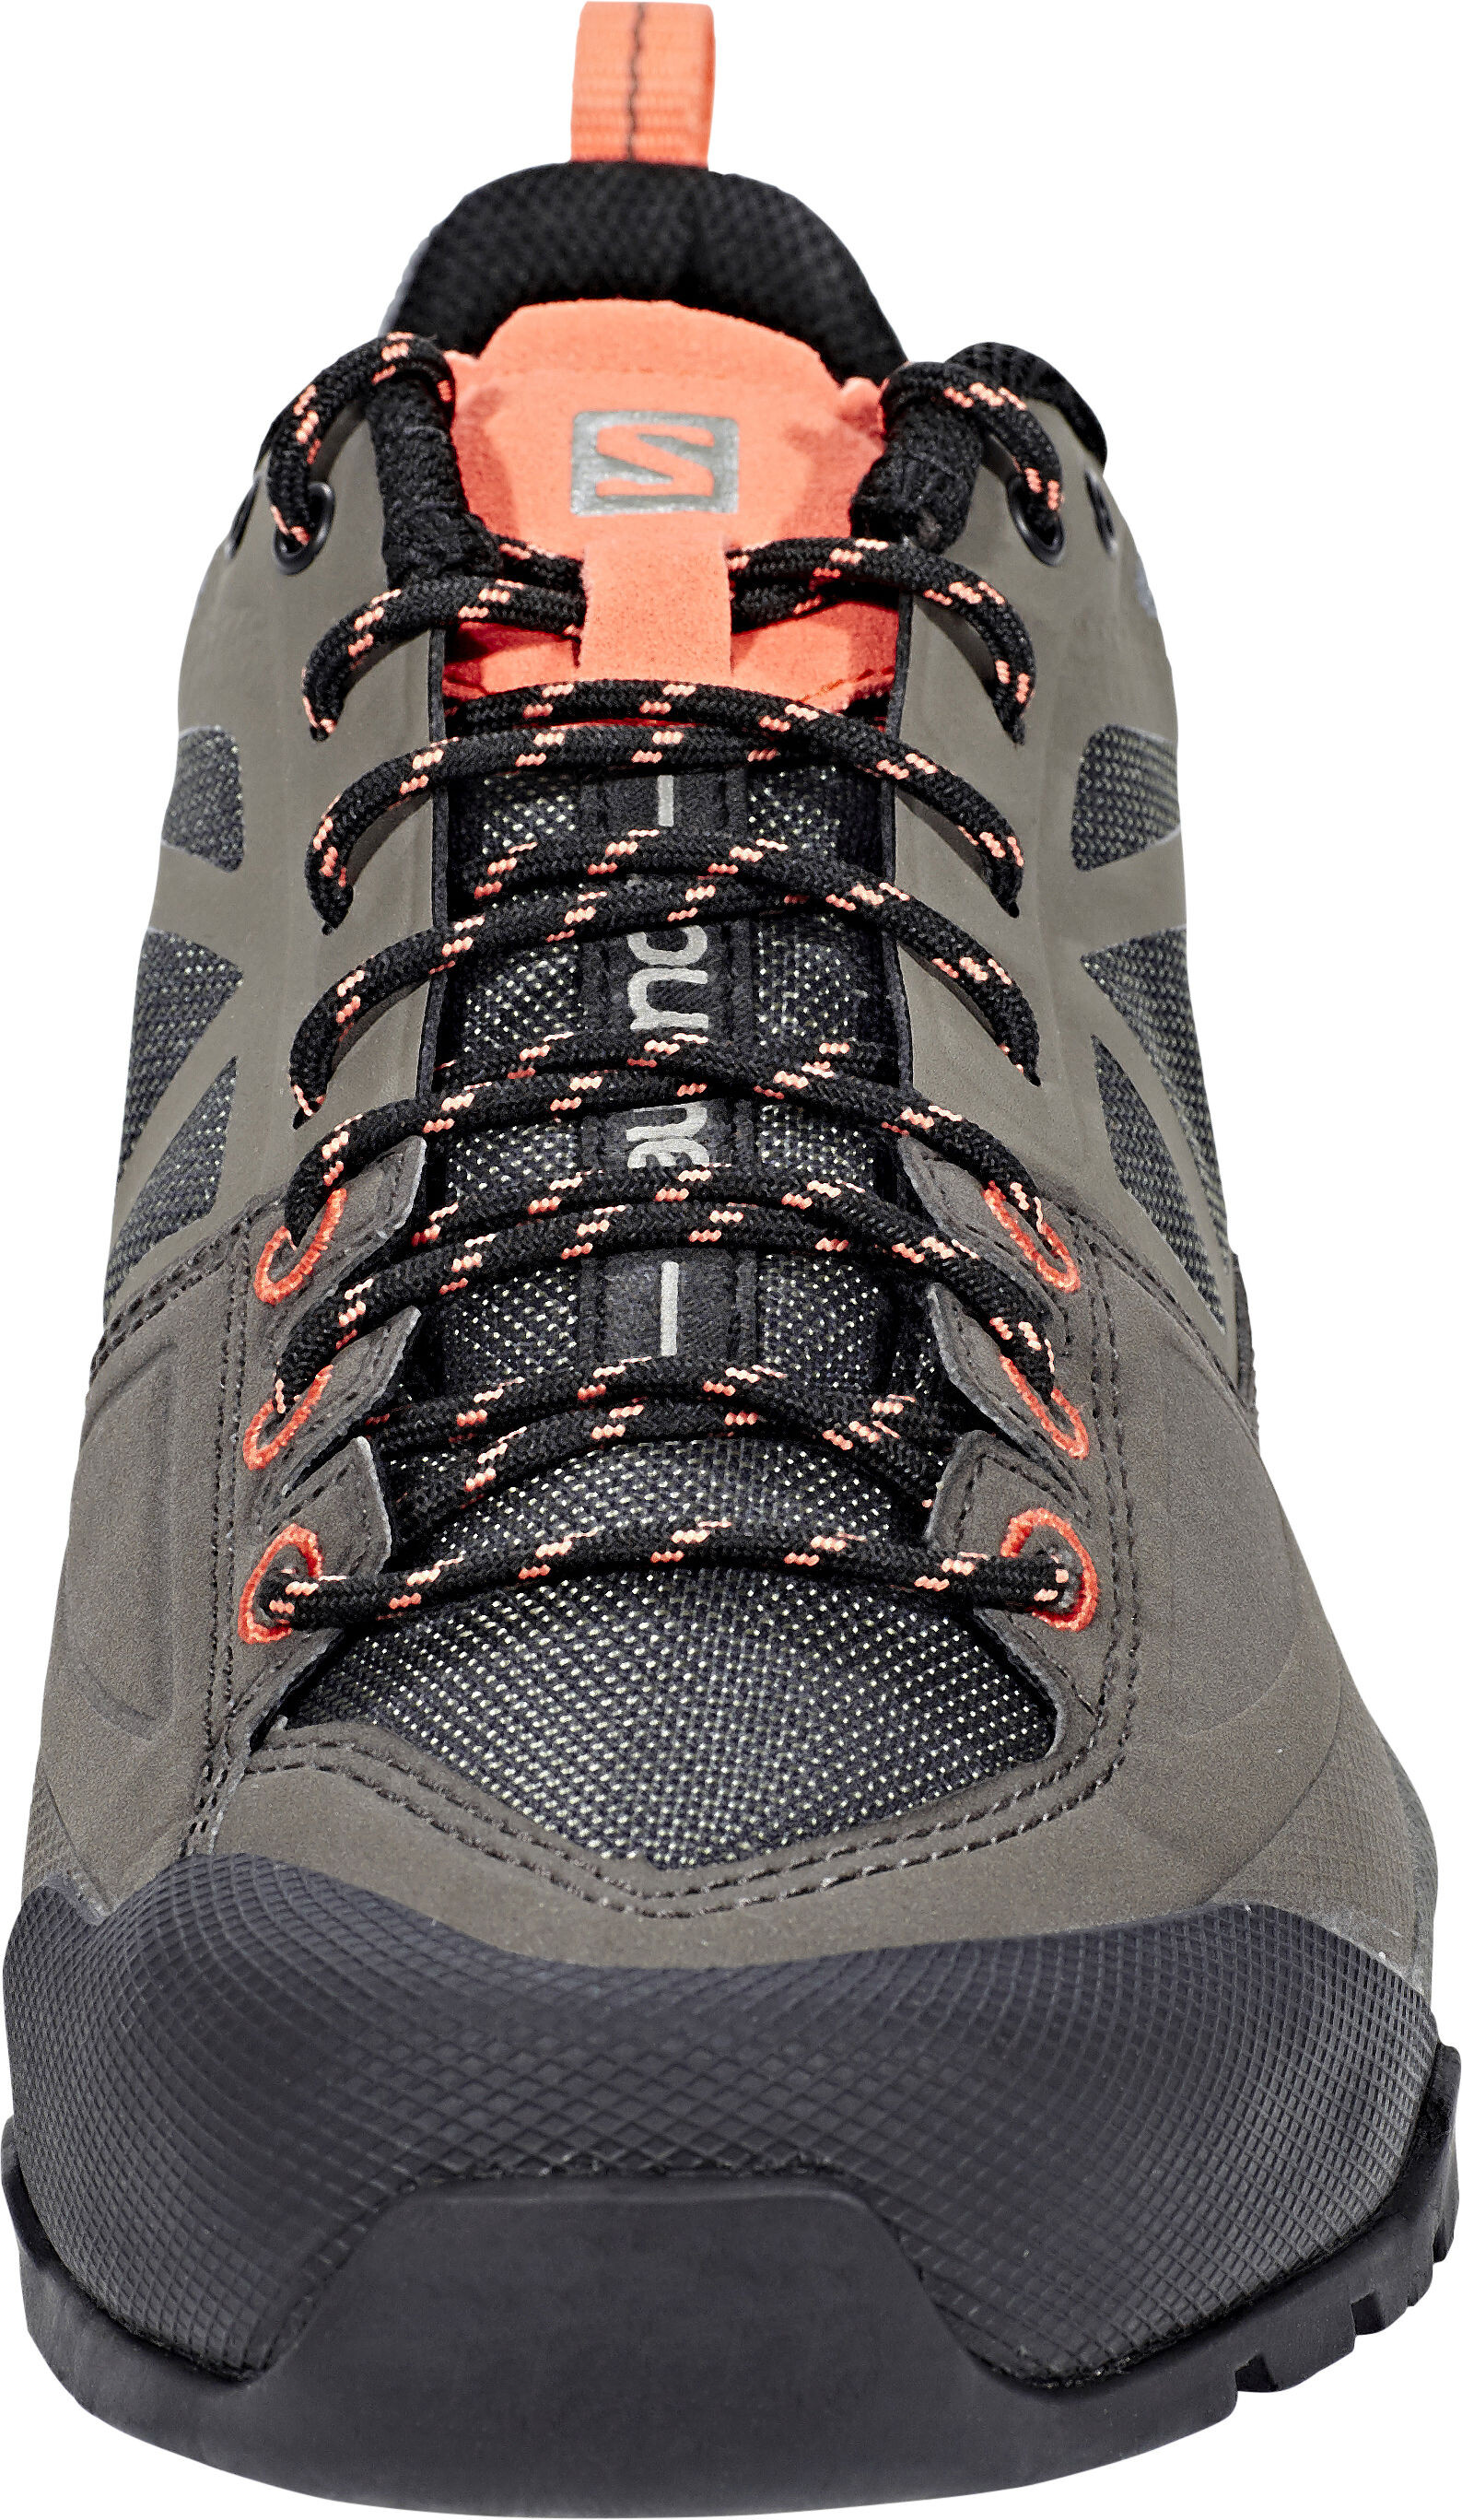 Salomon X Alp Spry Shoes Women grey pink at Addnature.co.uk 0e4617f26a5